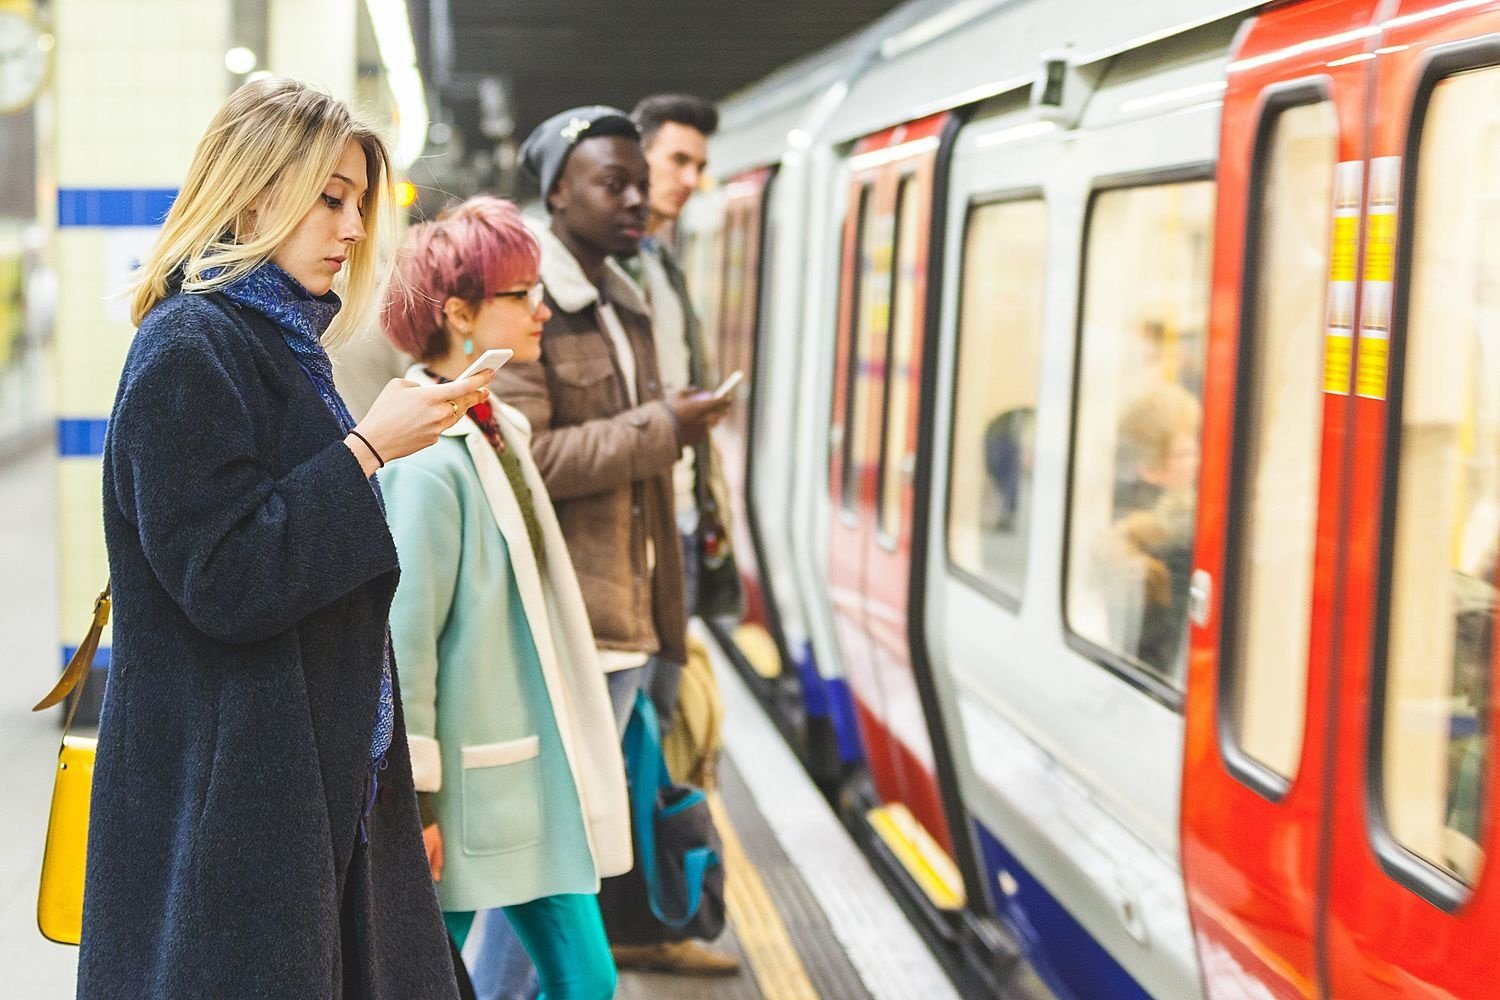 How to disconnect during your commute to work